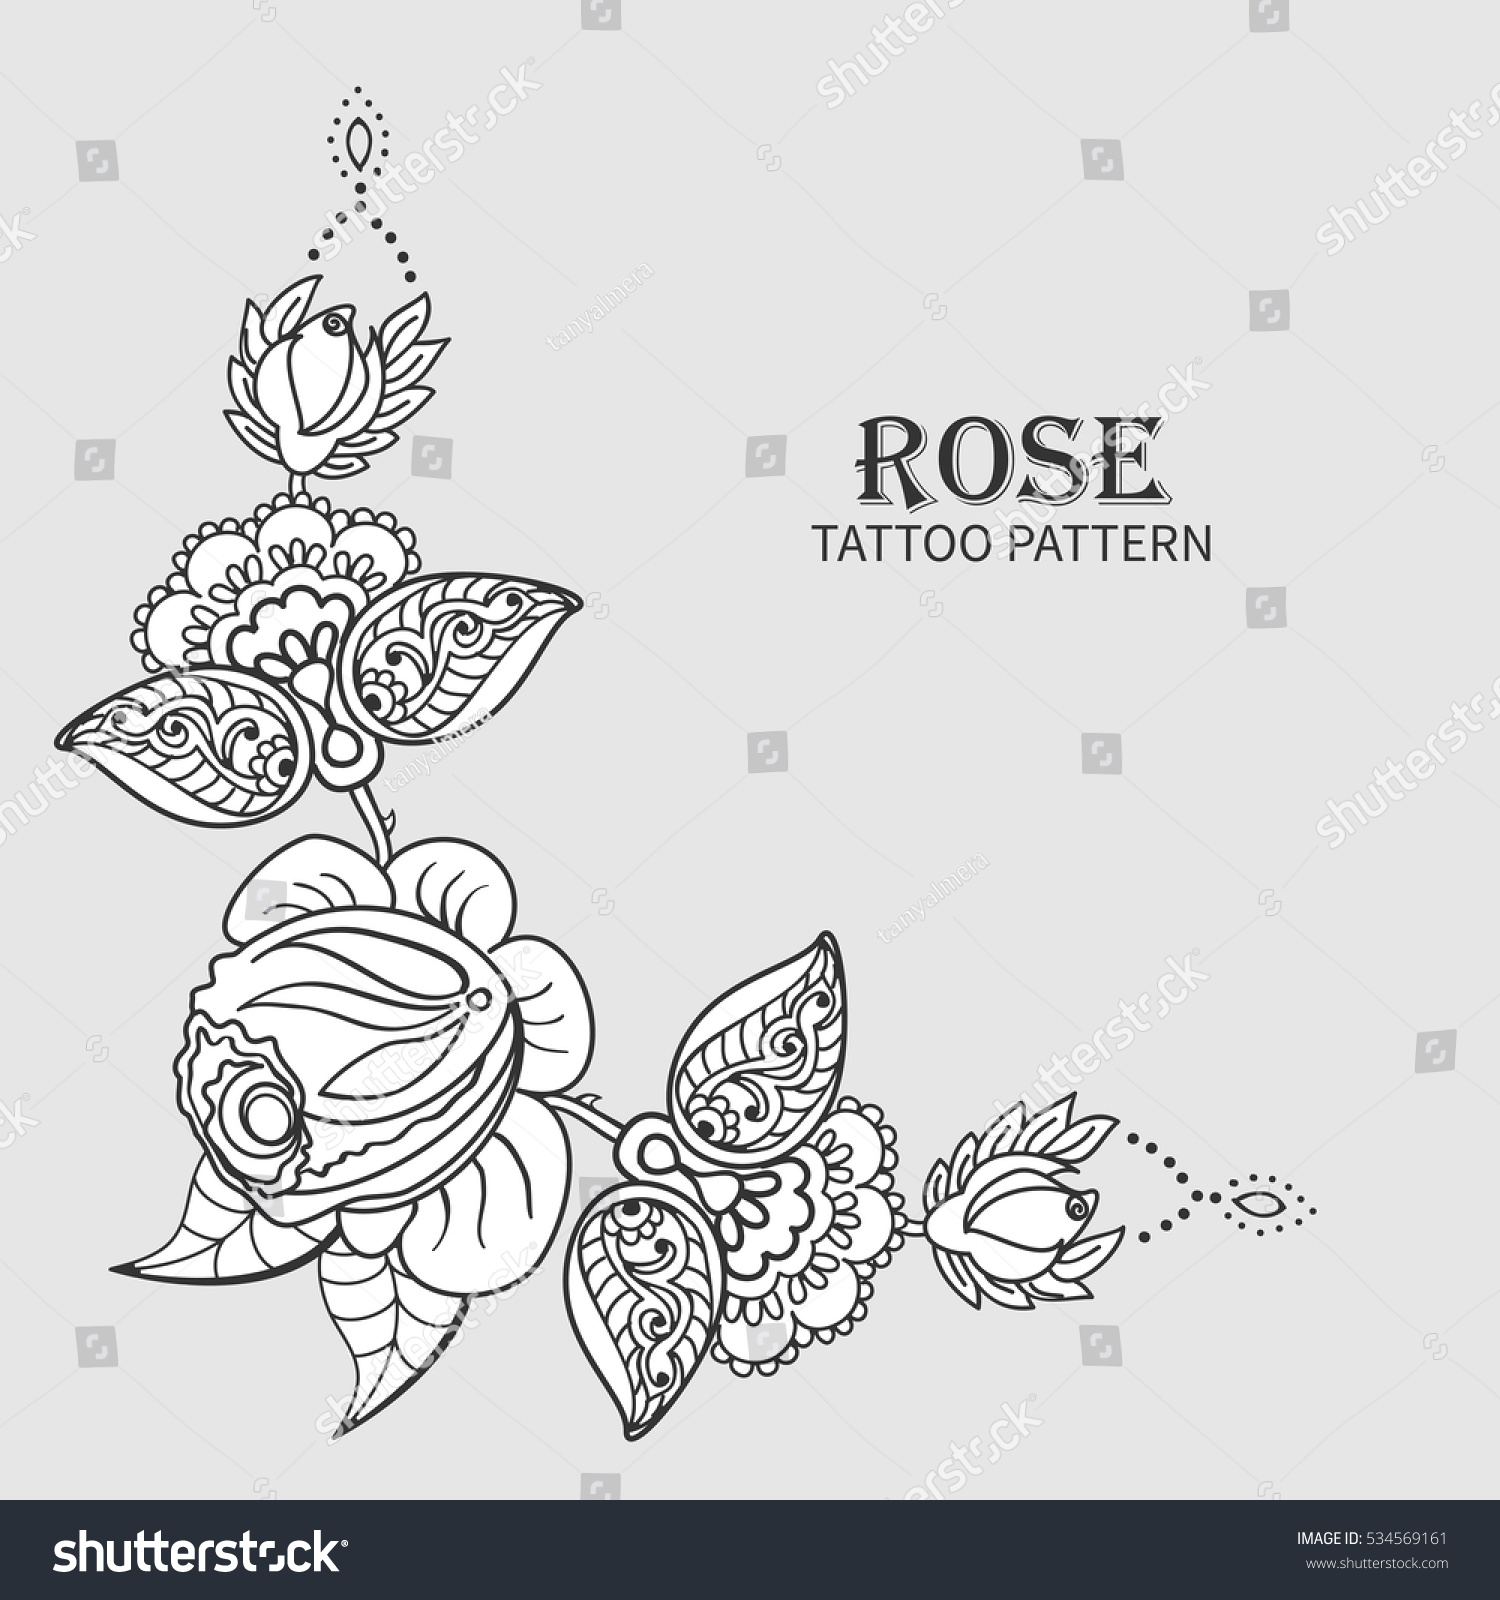 Hand Drawn Rose Ornament Floral Elements Stock Vector Royalty Free